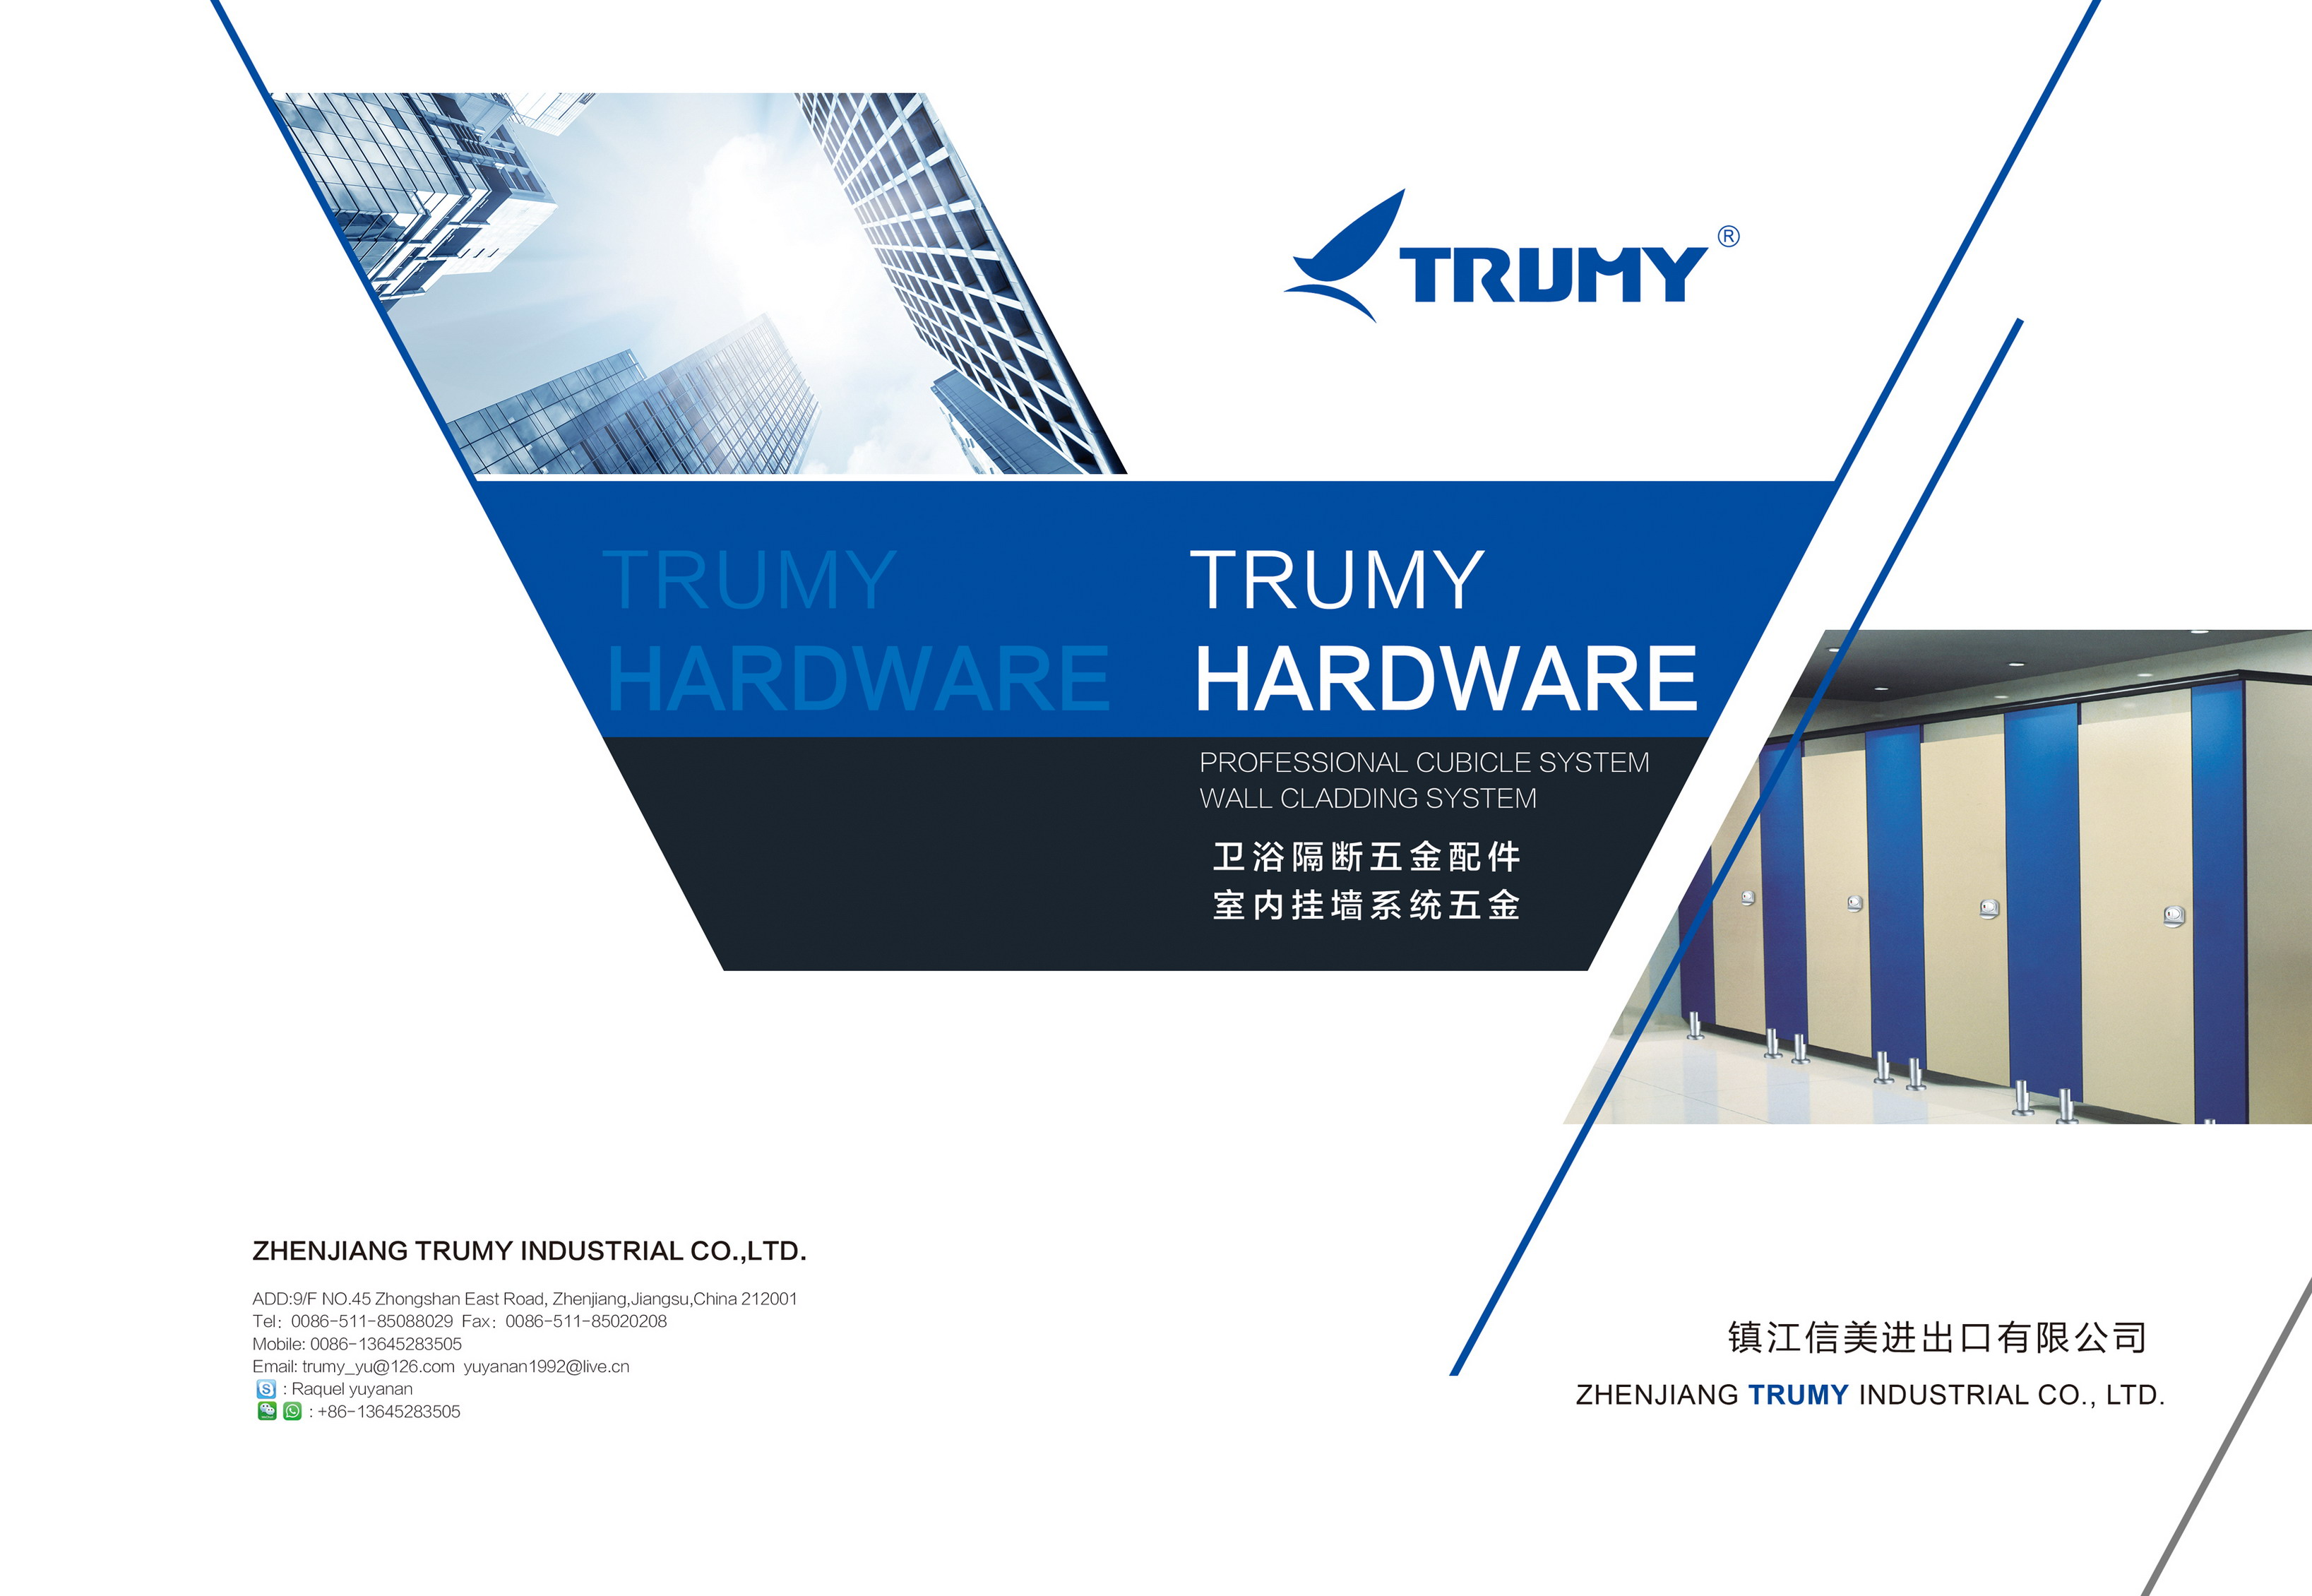 TRUMY-Toilet Partitions Hardware